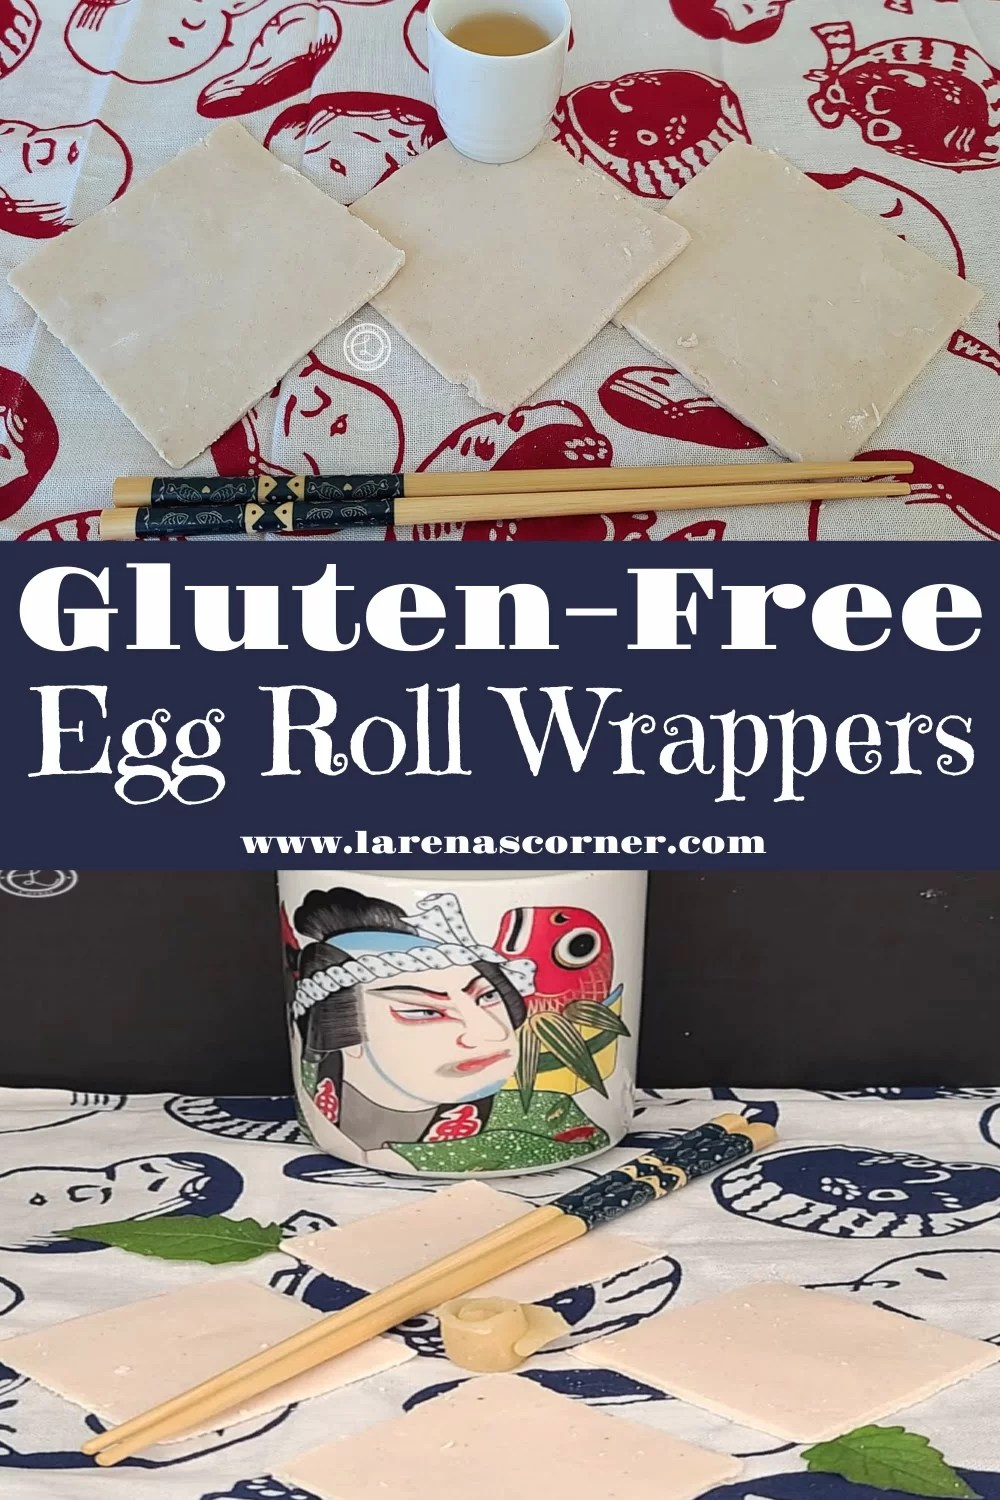 Gluten-Free Egg Roll Wrappers. Two different pictures of Egg Roll Wrappers